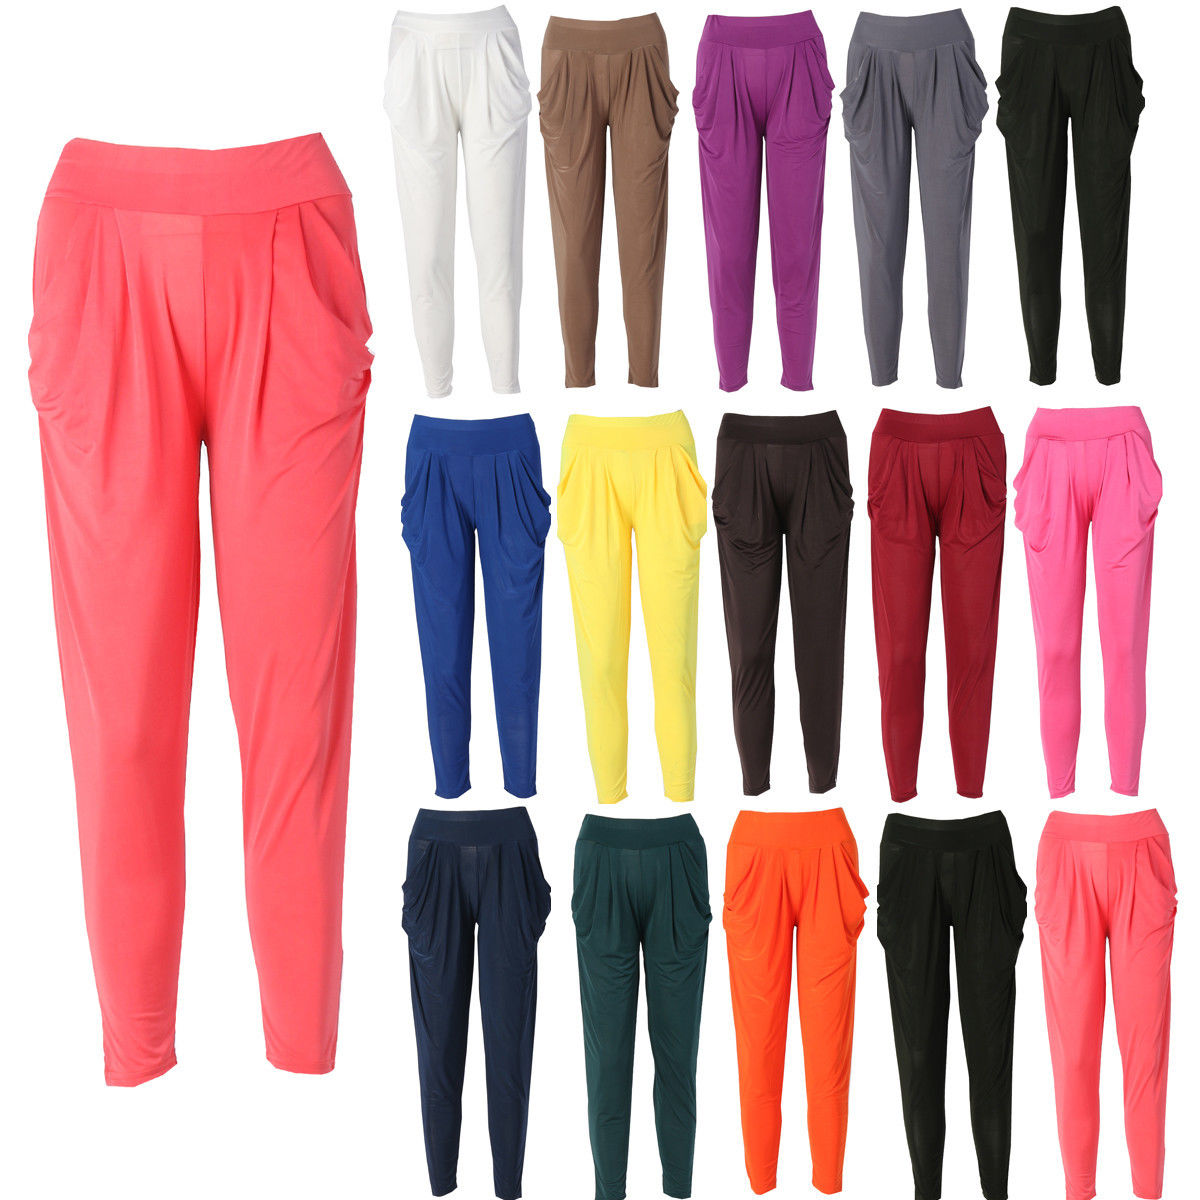 Hot Sale Summer Women Slim Casual Harem Pants Solid High Waist Long Pant Trousers Women Clothing-geekbuyig